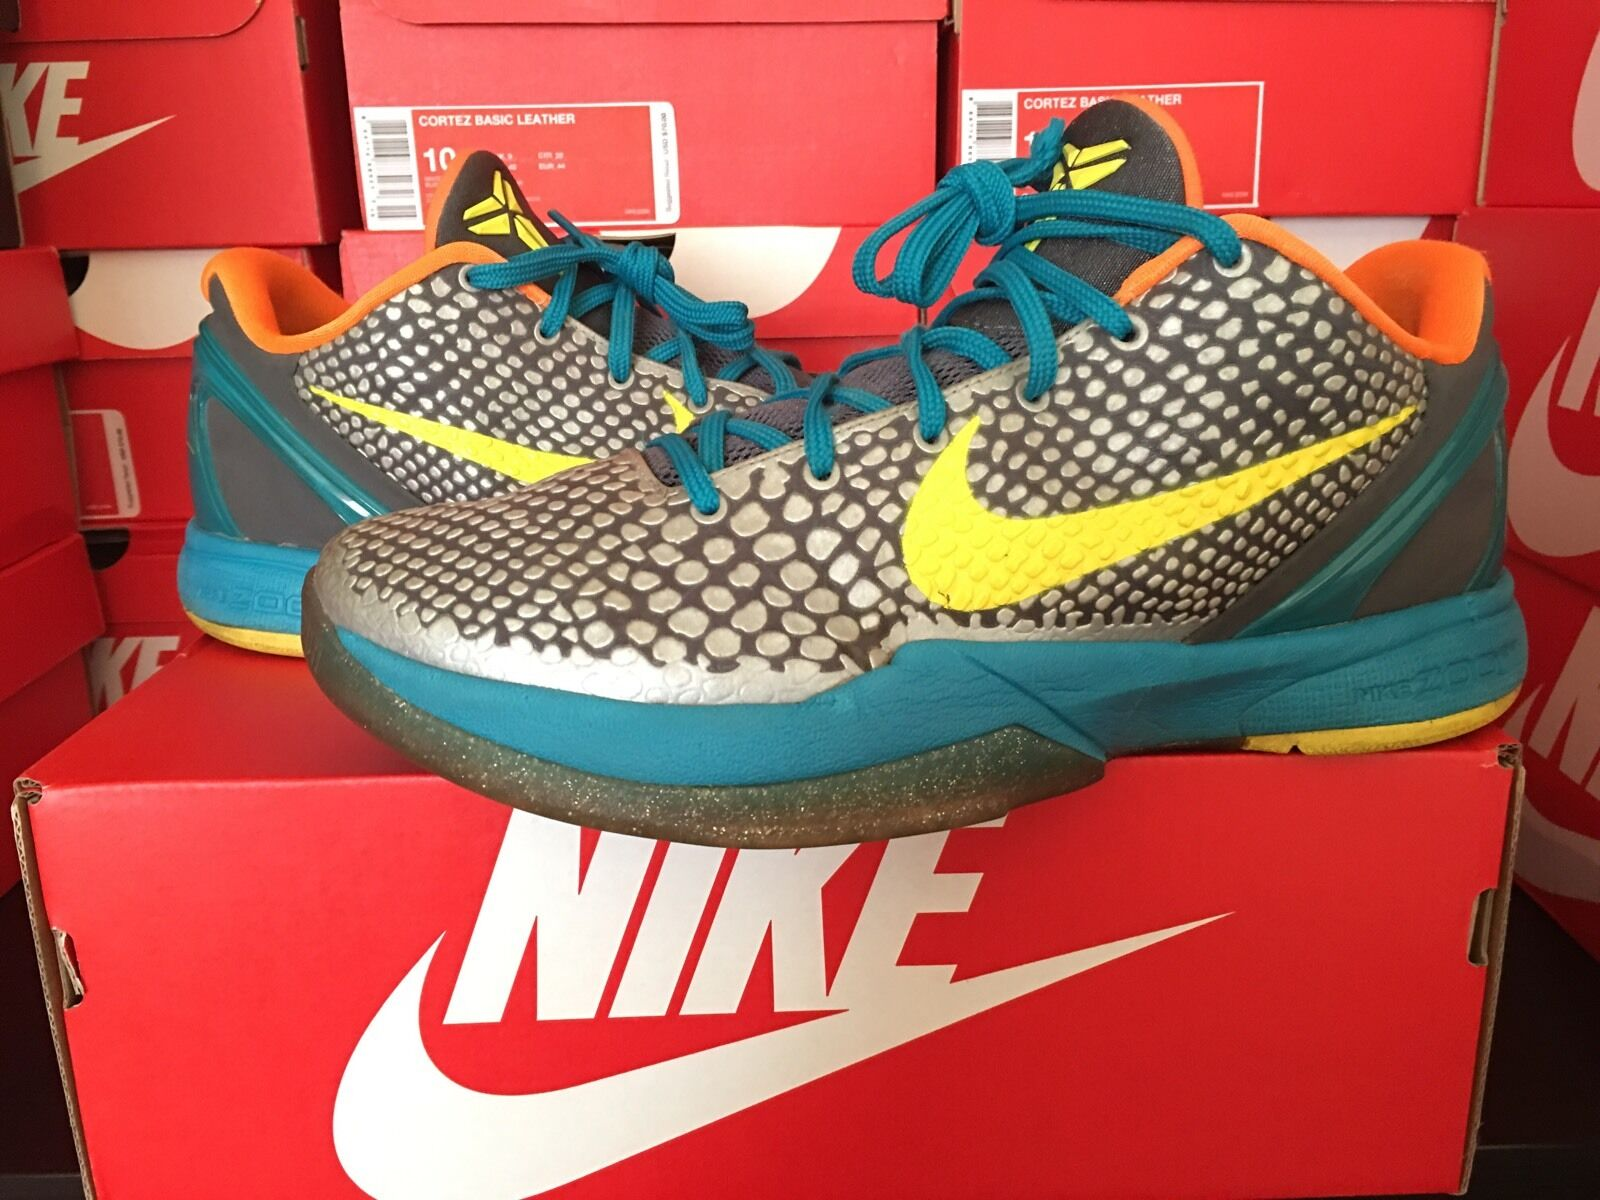 Nike Kobe 6 VI 9 Helicopter Jordan Lebron Yeezy KD LOT 12 10 9 8 7 5 4 3 2 1 The most popular shoes for men and women